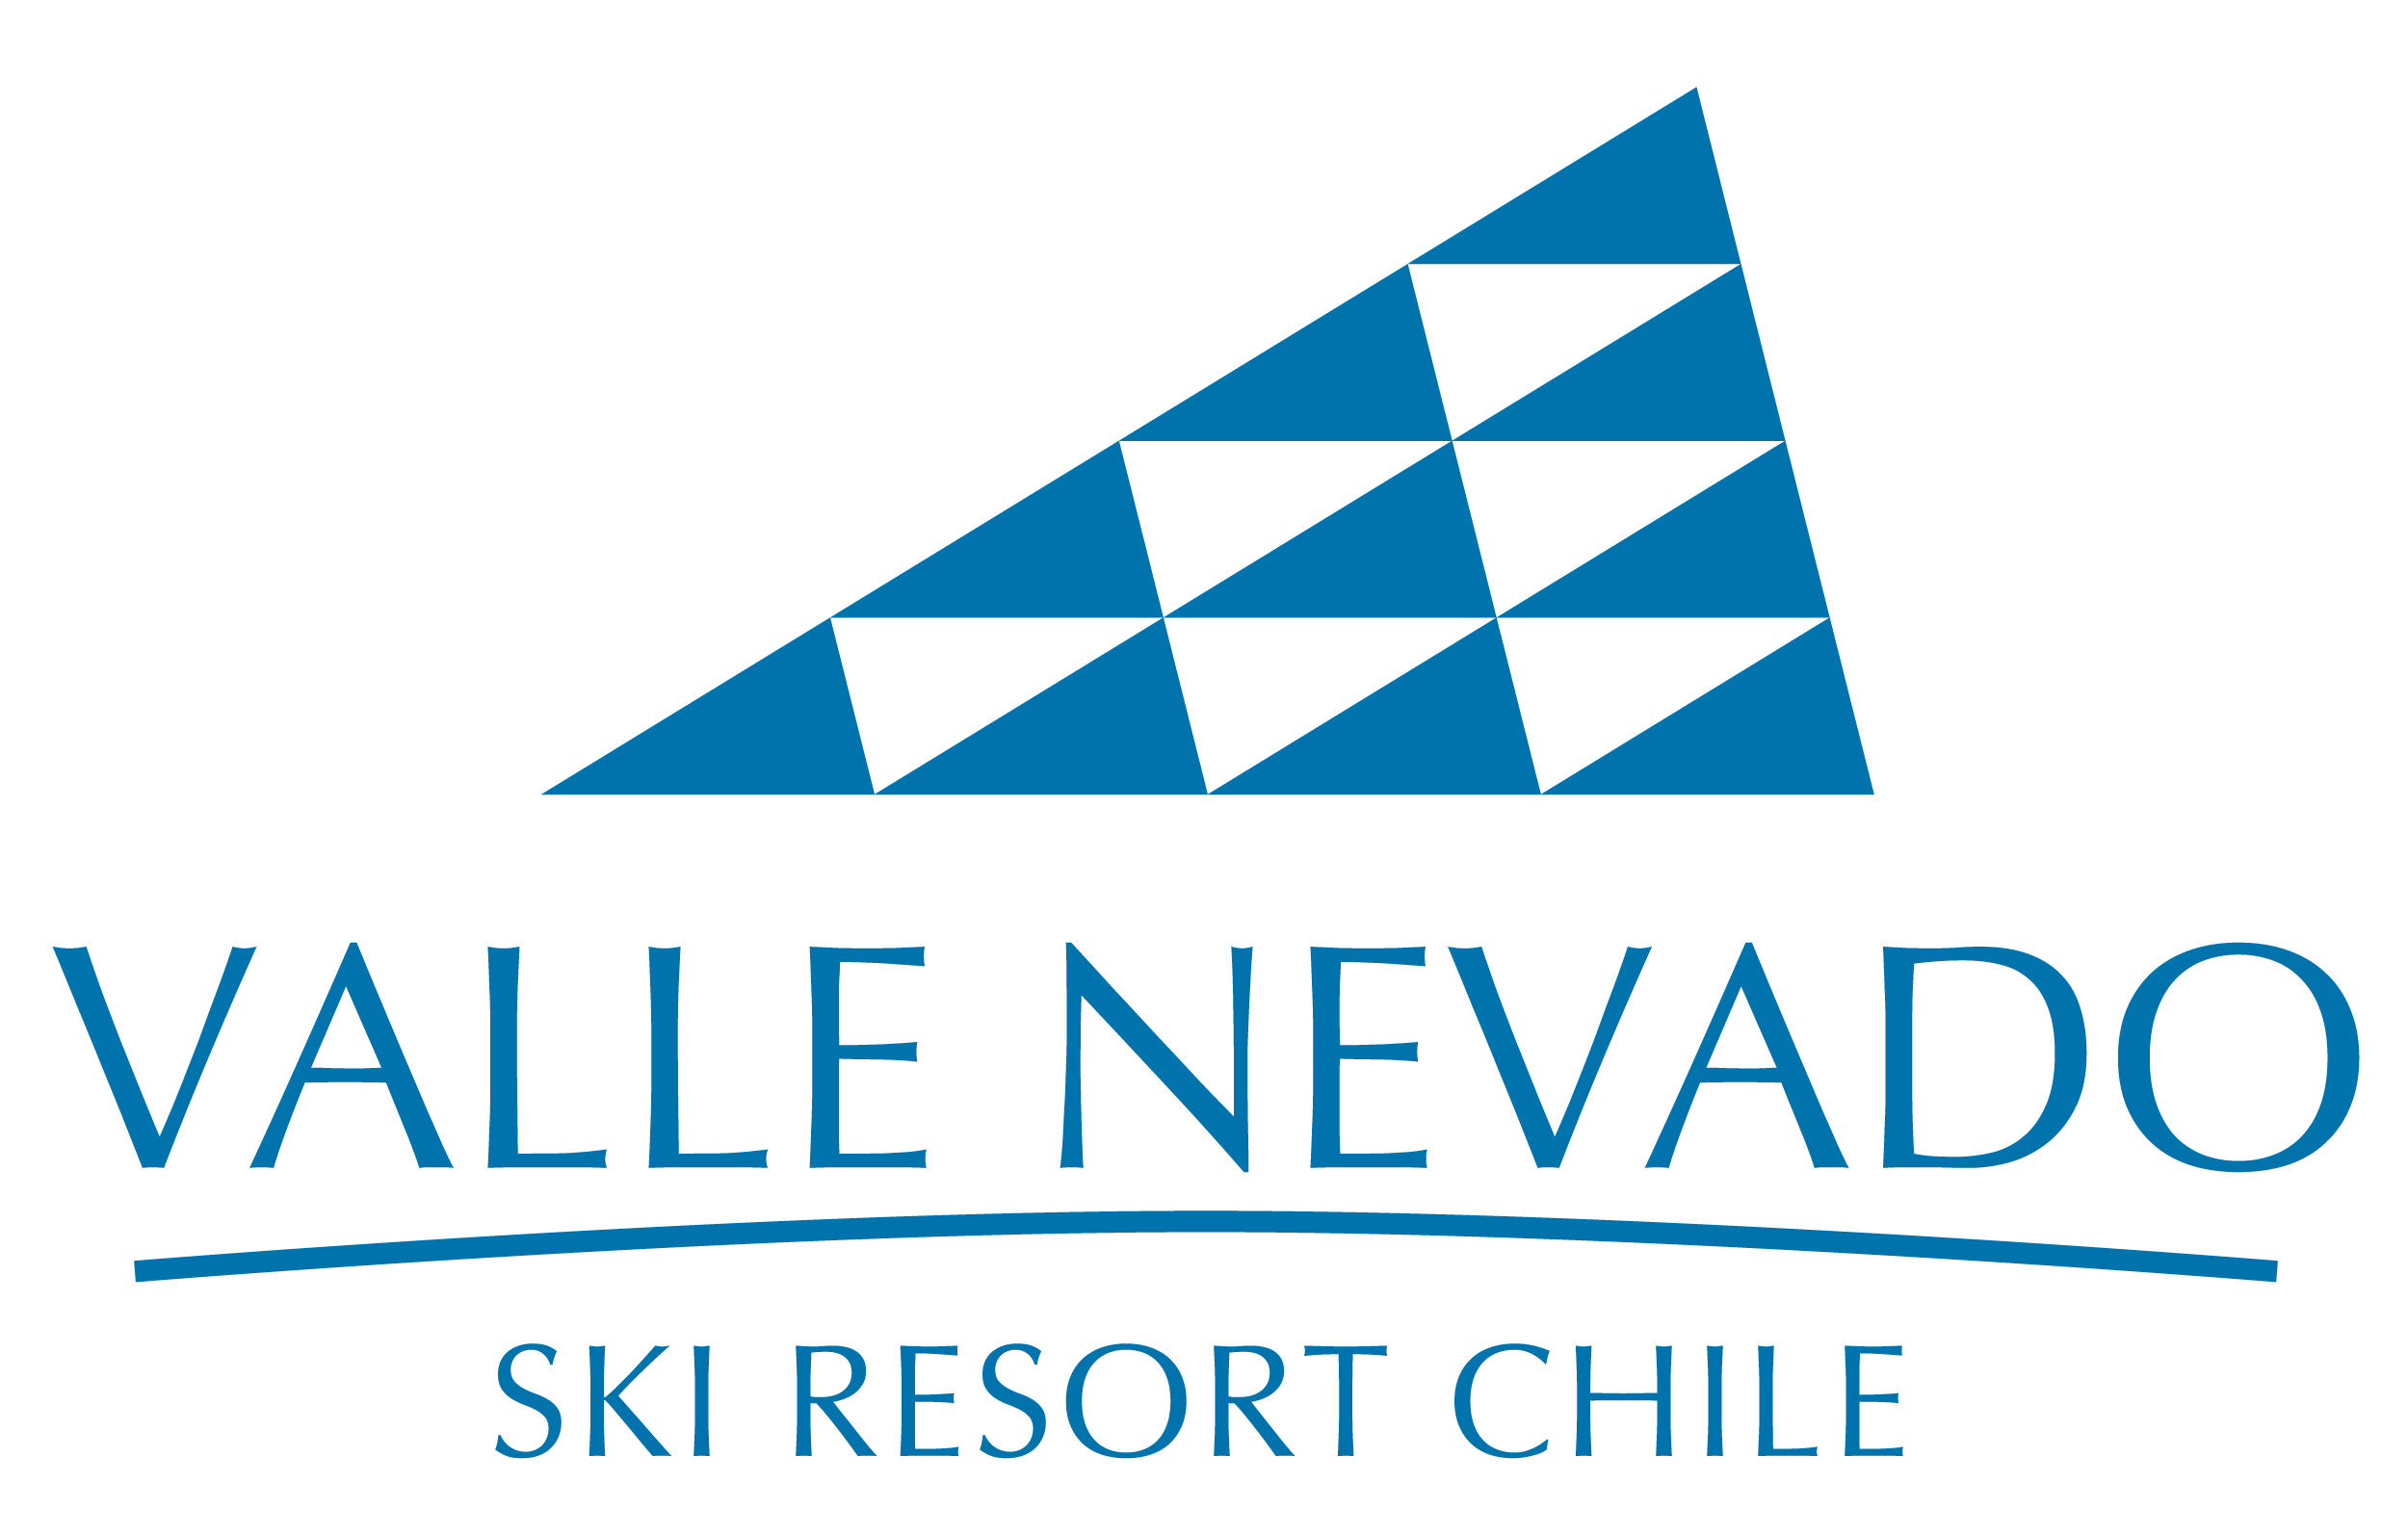 logo-valle-nevado.jpg